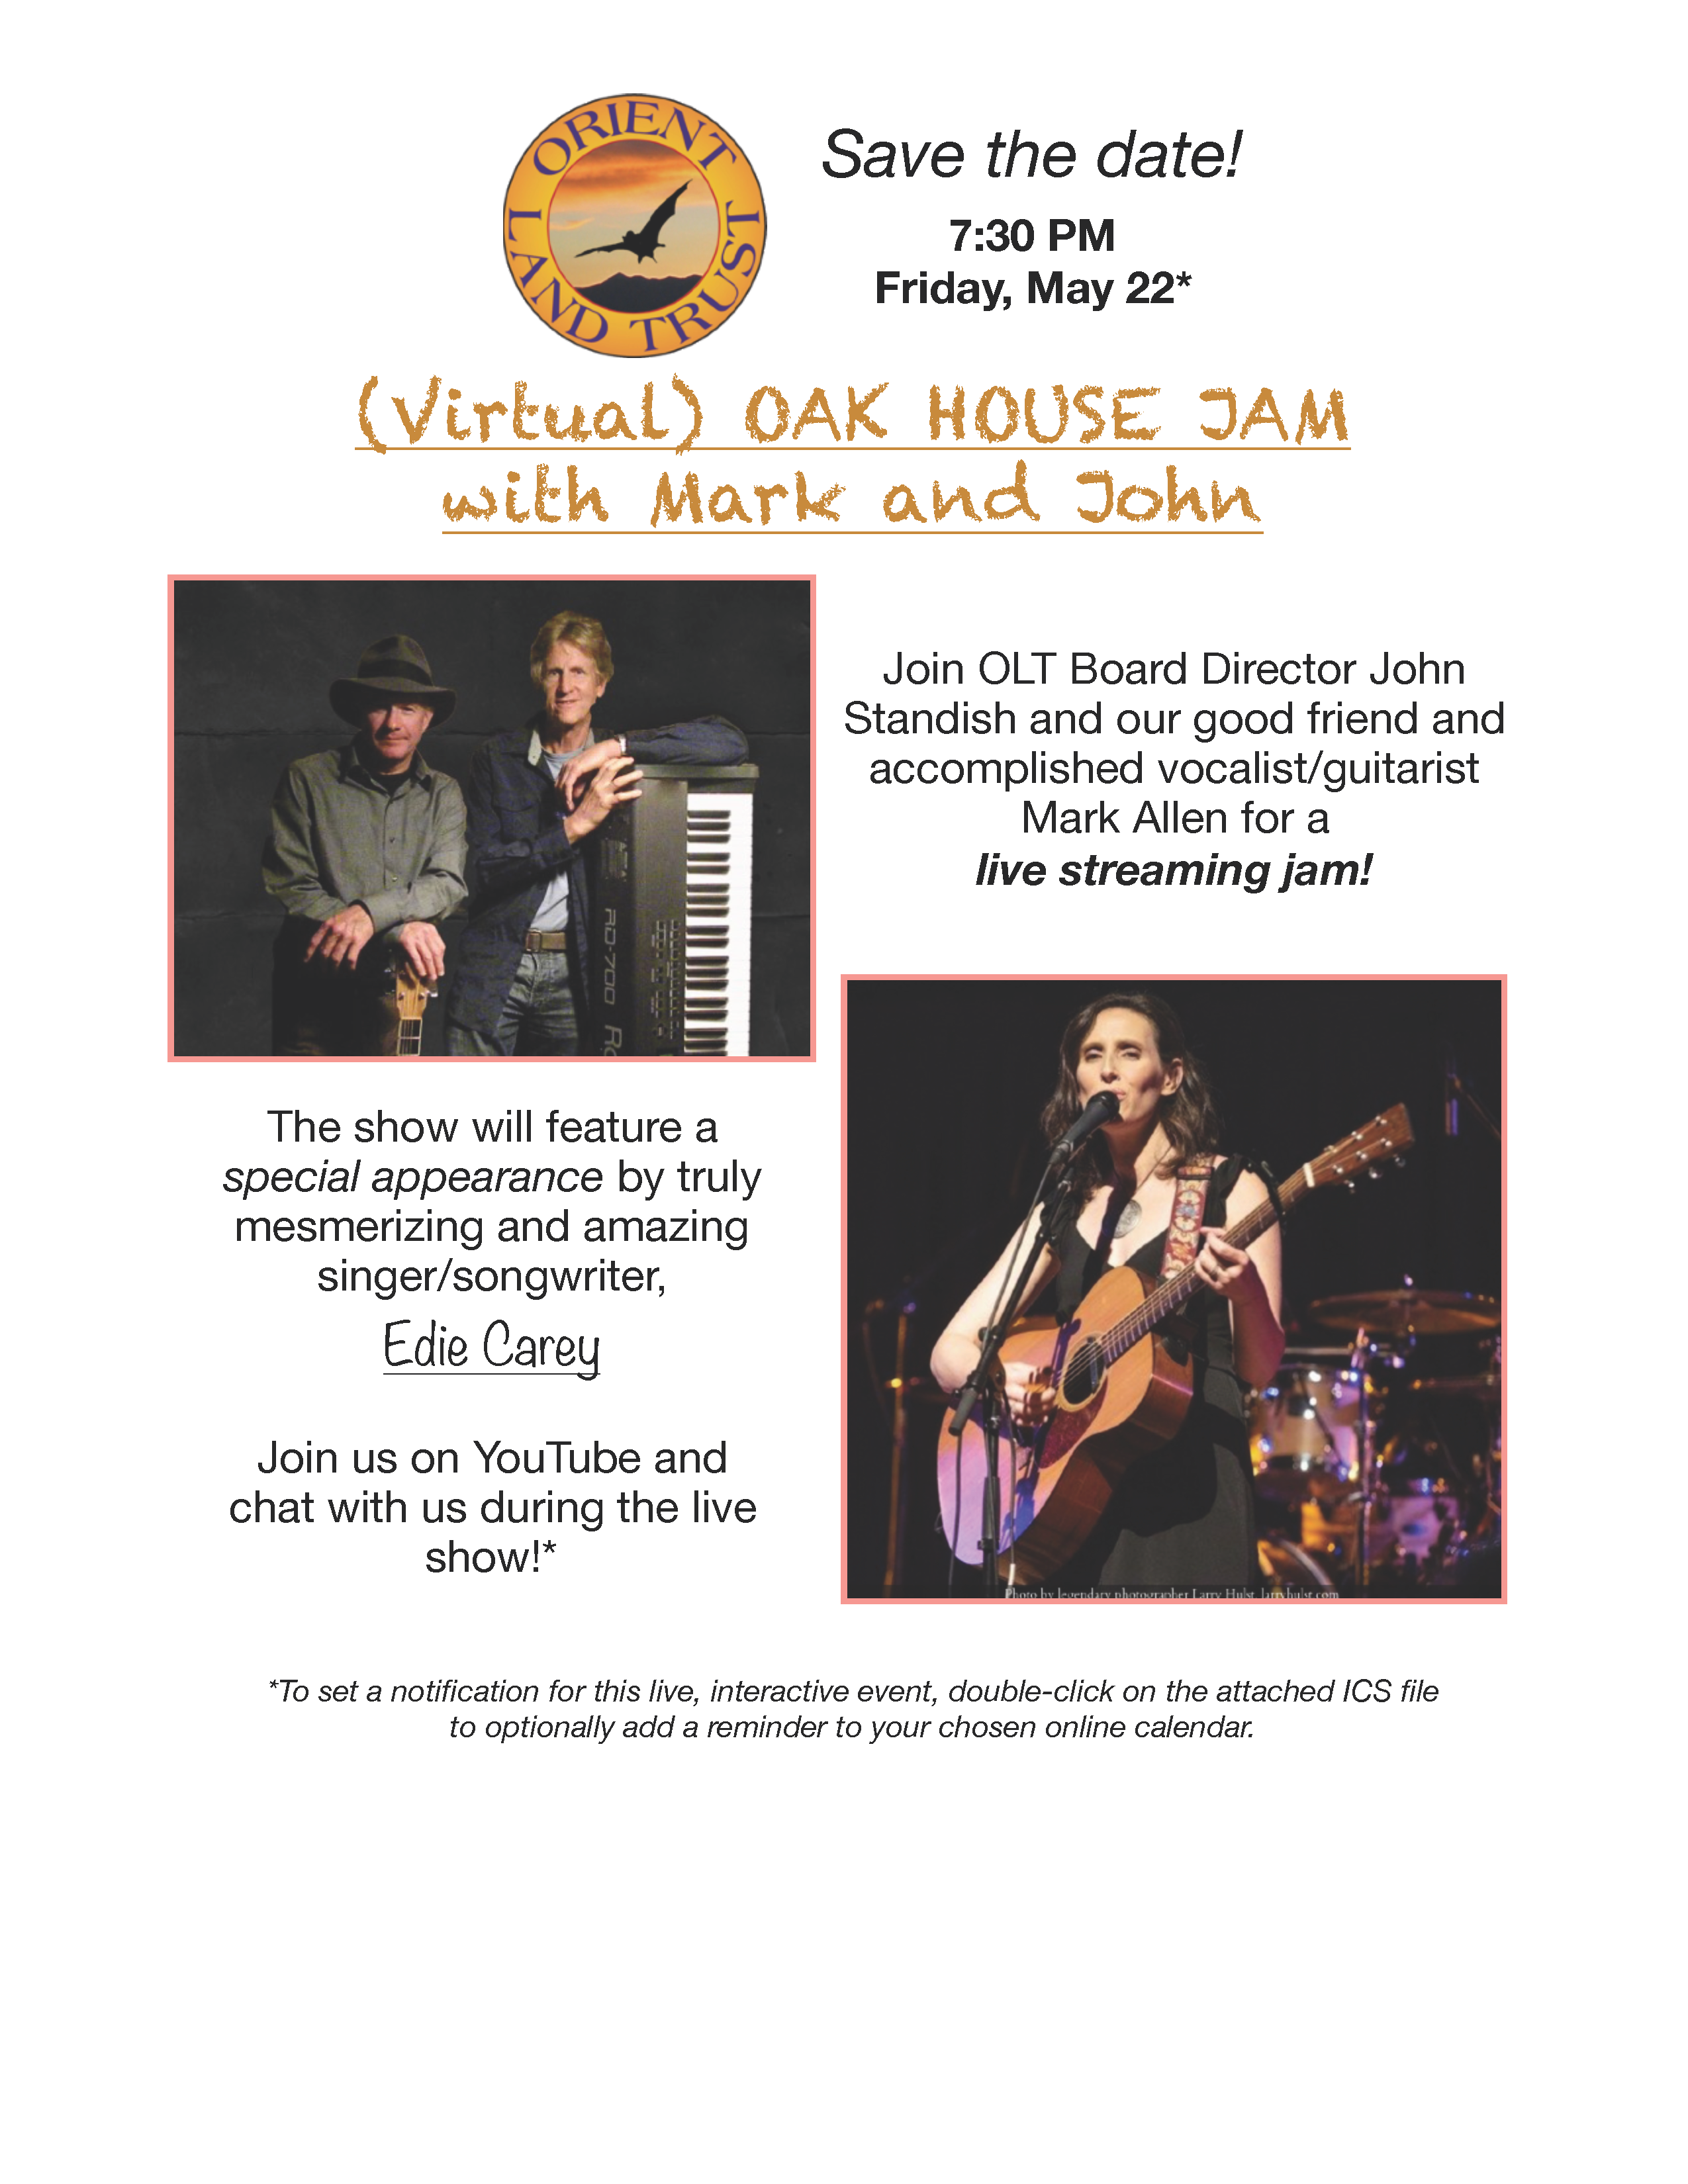 7:30 PM  Friday, May 22:   (Virtual) OAK HOUSE JAM with Mark and John.  Join OLT Board Director John Standish and our good friend and accomplished vocalist/guitarist Mark Allen for a live streaming jam!   The show will feature a special appearance by truly mesmerizing and amazing singer/songwriter, Edie Carey.    Join us on YouTube and chat with us during the live show!